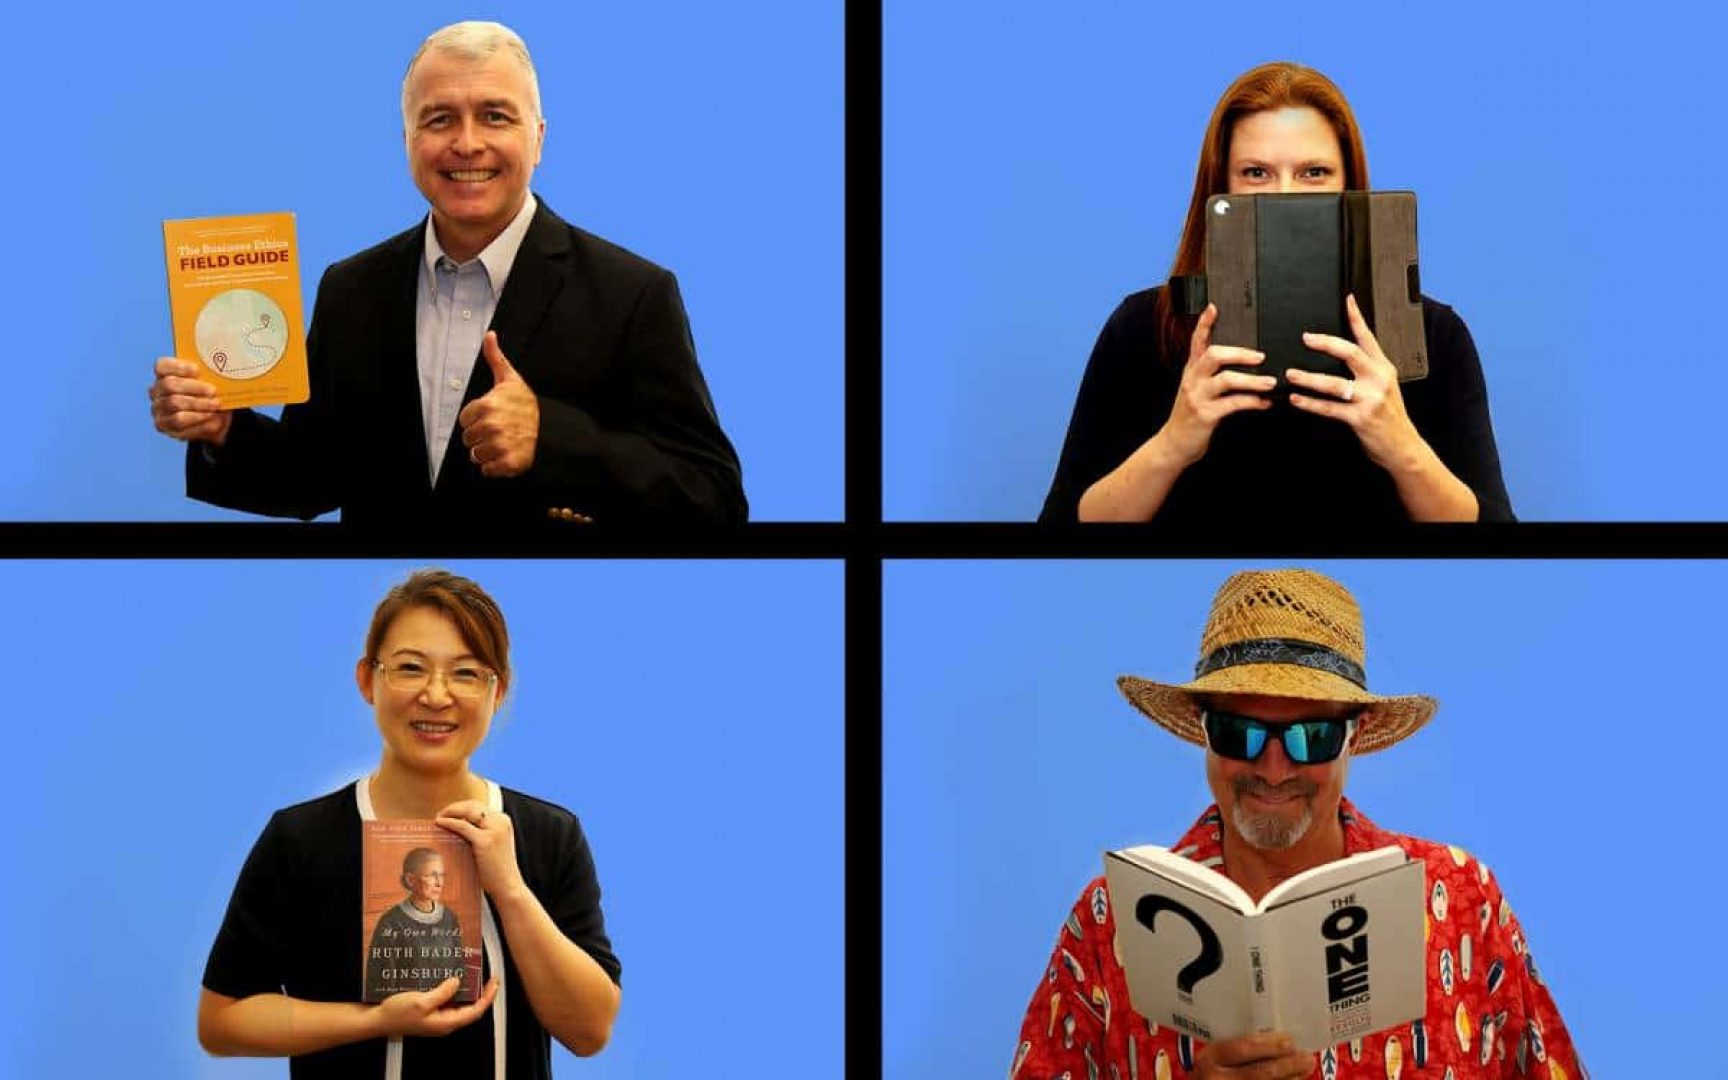 4 Warrington faculty members, two male and two female, hold books. They are positioned in four rectangles on a blue background, similar to the Brady Bunch opening